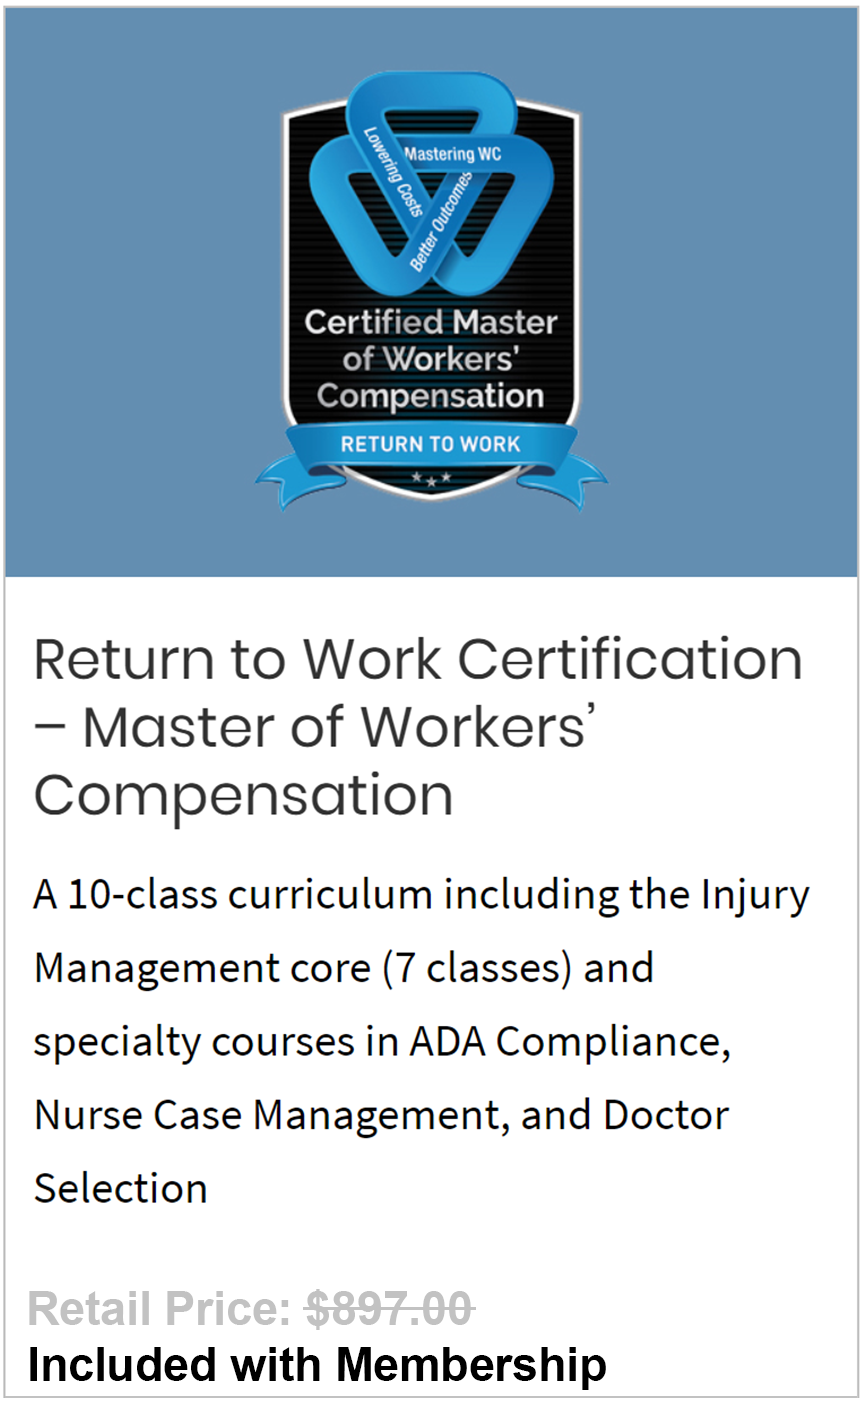 Return to Work Certification – Master of Workers' Compensation